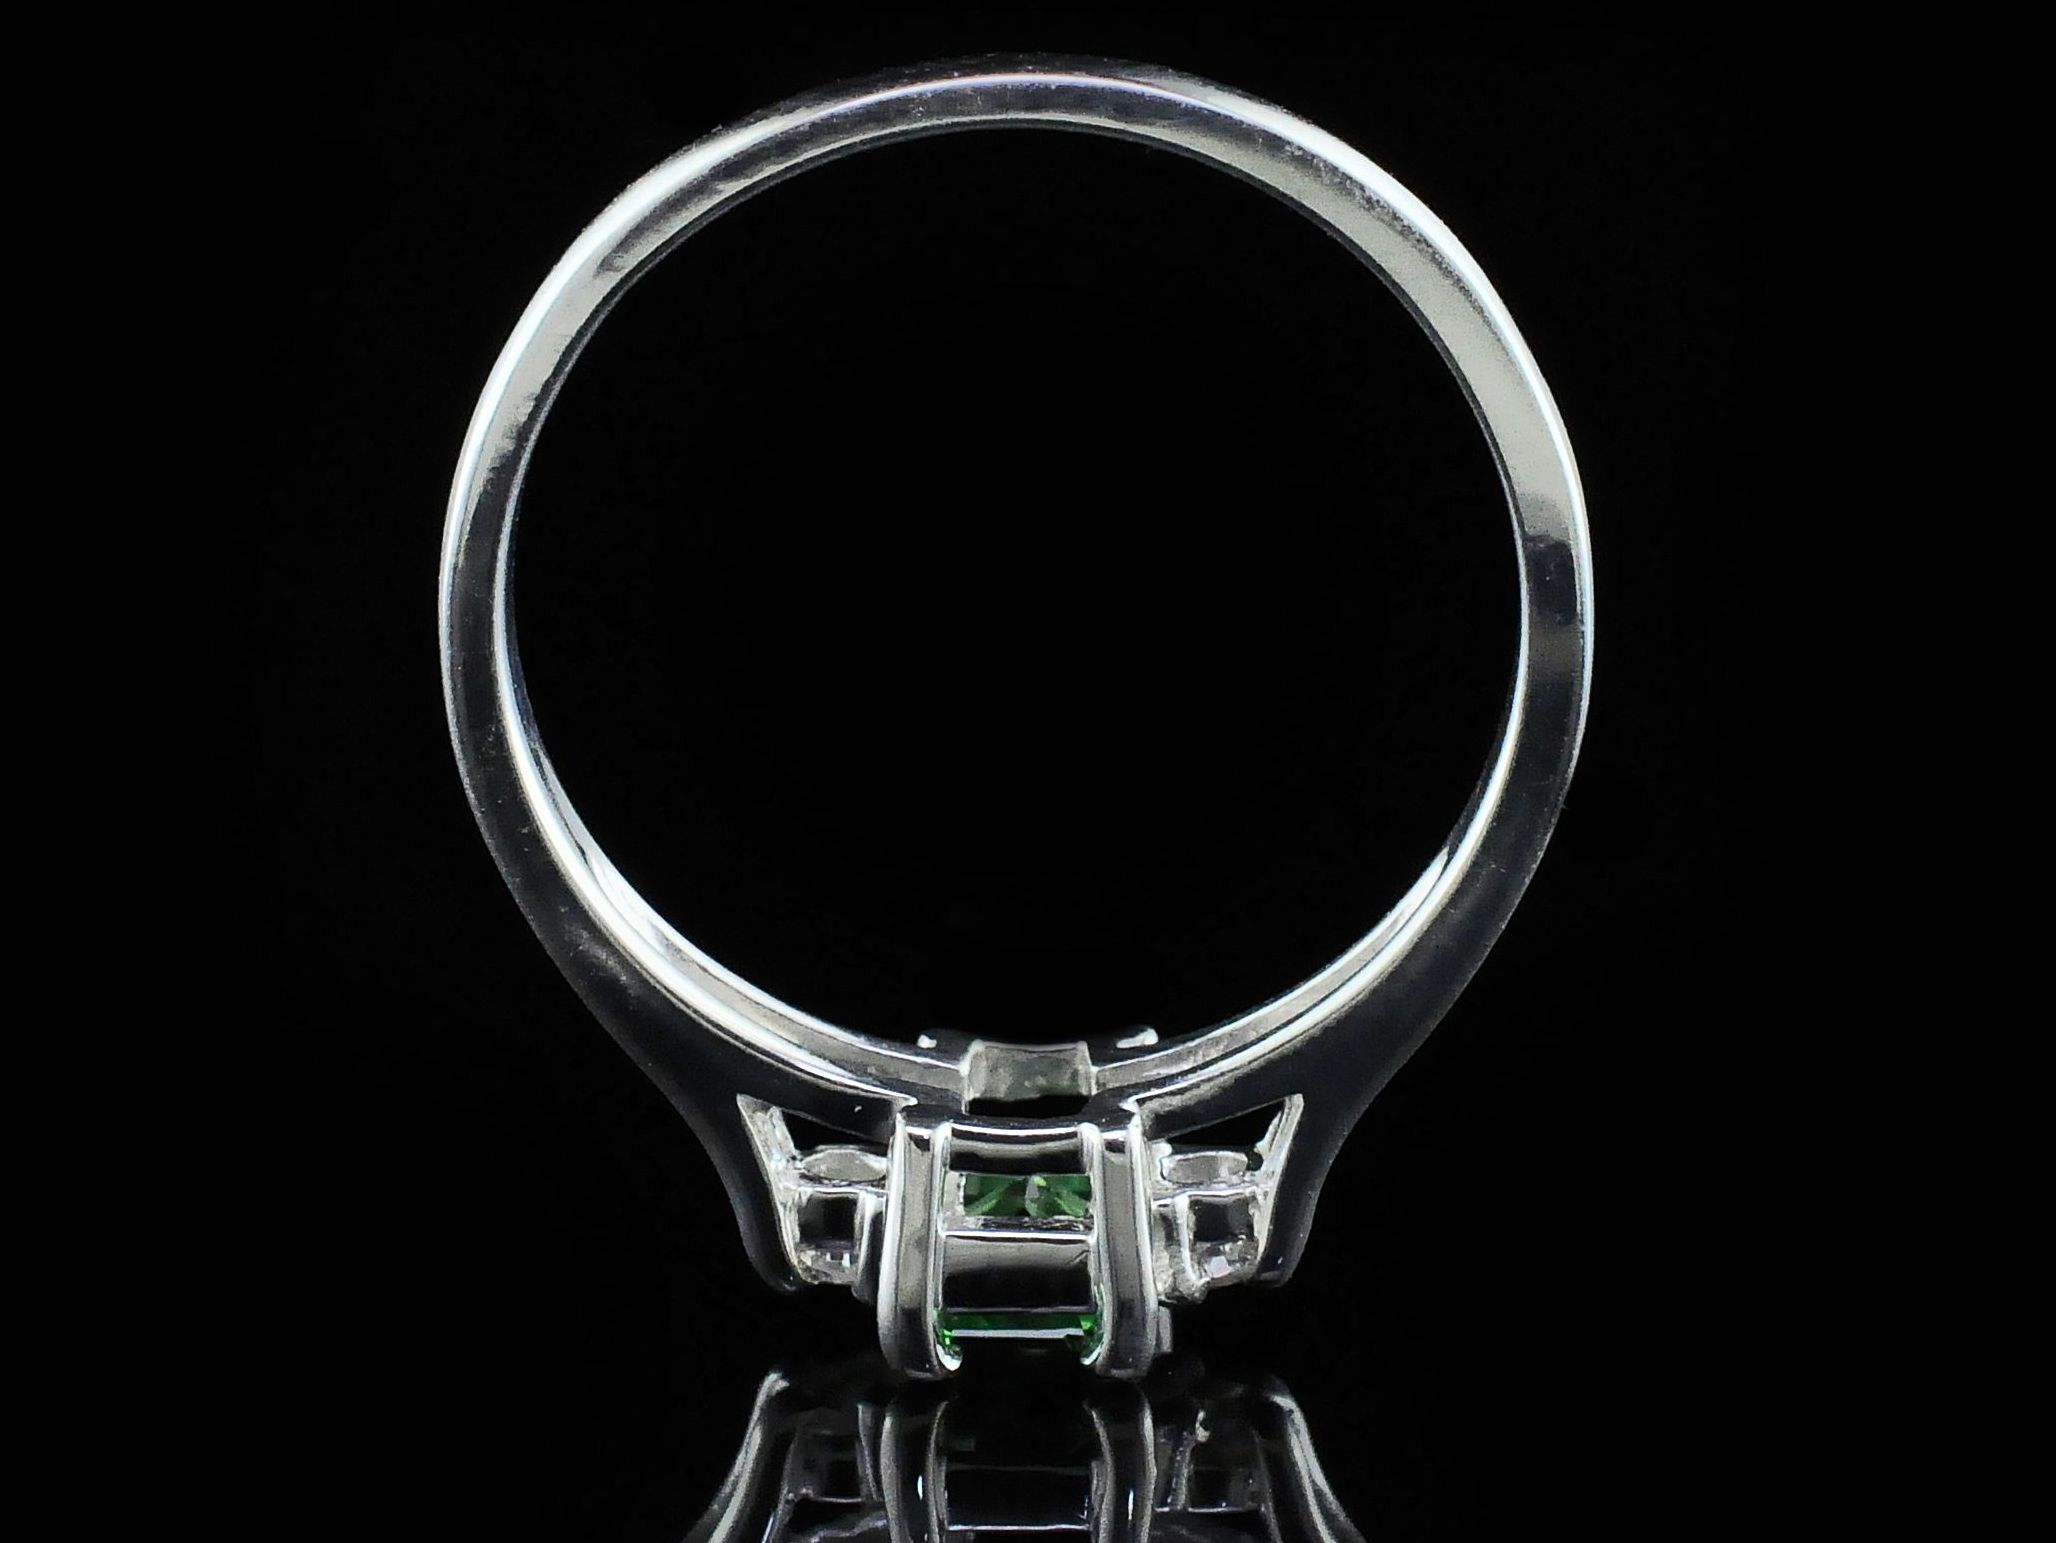 Silver Rings With Stones - Tsavorite Garnet And Diamond Three Stone Ring - image #3